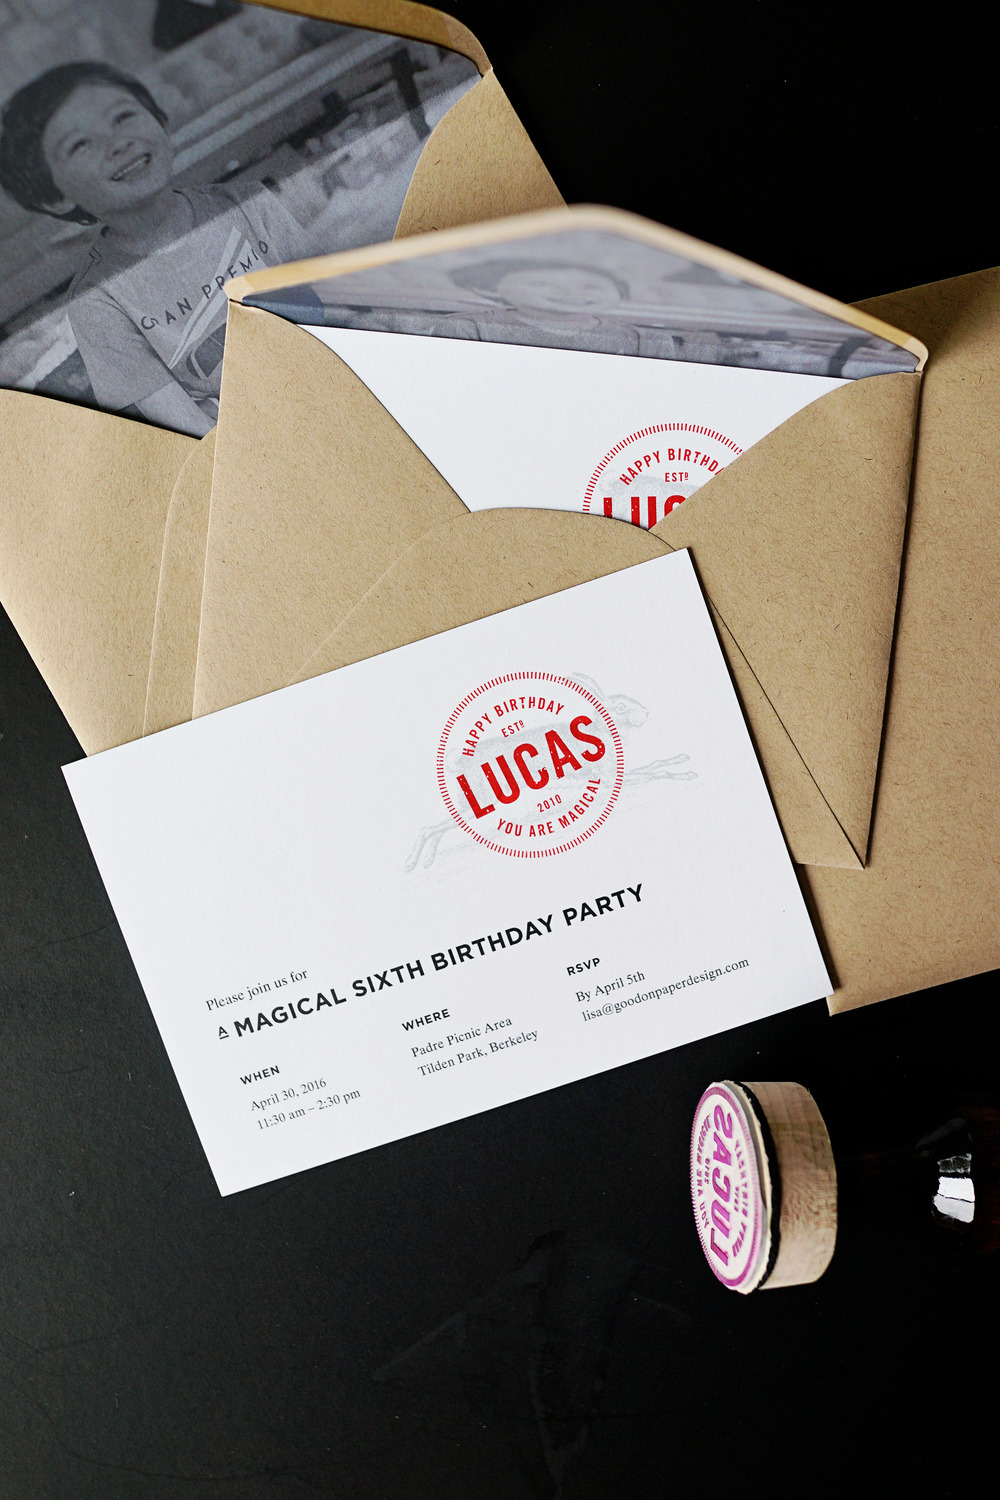 Lucas' 6th Birthday Party  /  www.goodonpaperdesign.com/blog/2016/5/12/lucas-6th-birthday-party  /  @good_on_paper